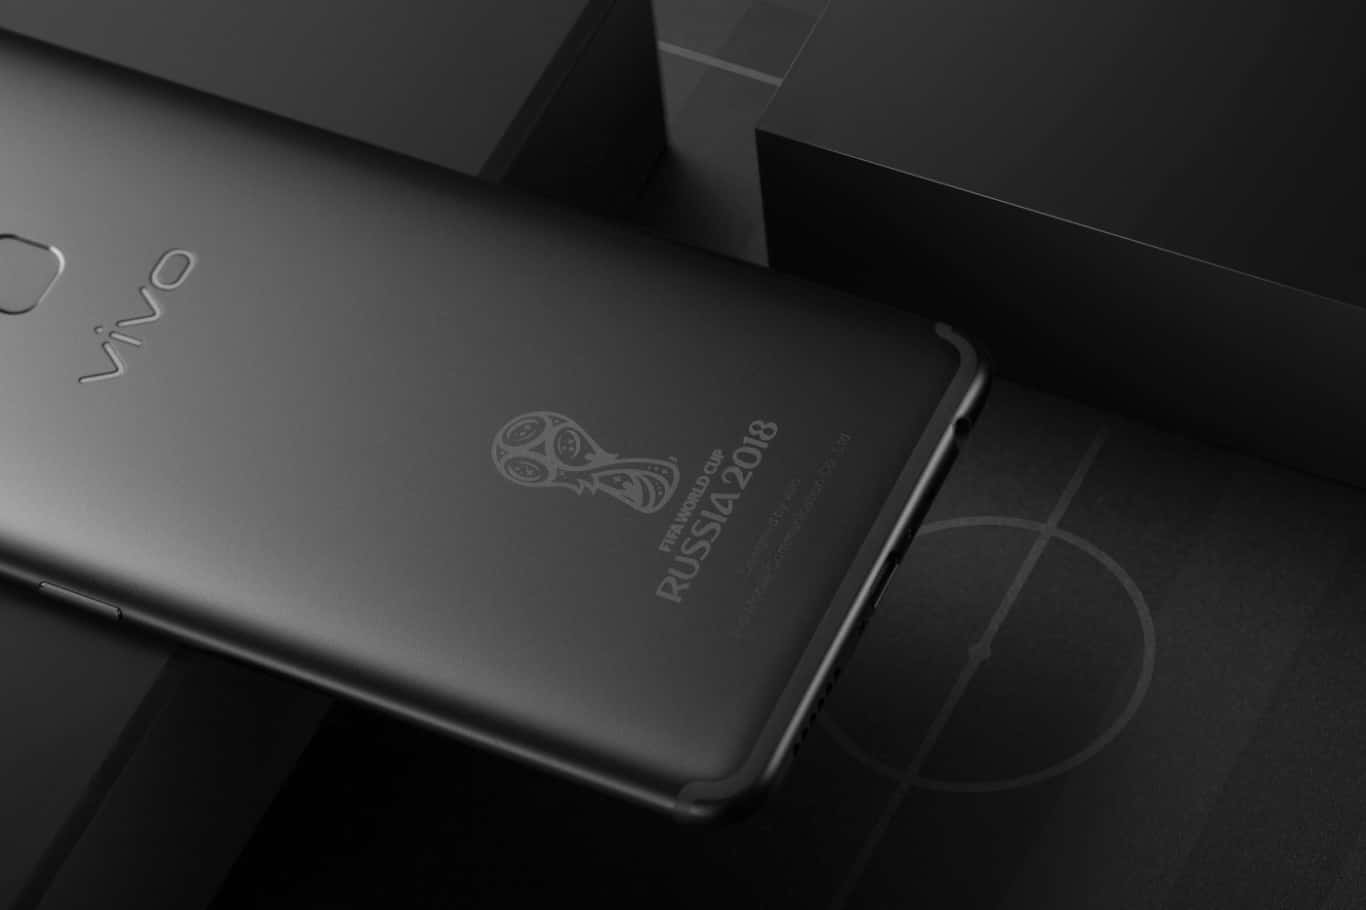 Special Edition Vivo X20 for FIFA World Cup 2018 13